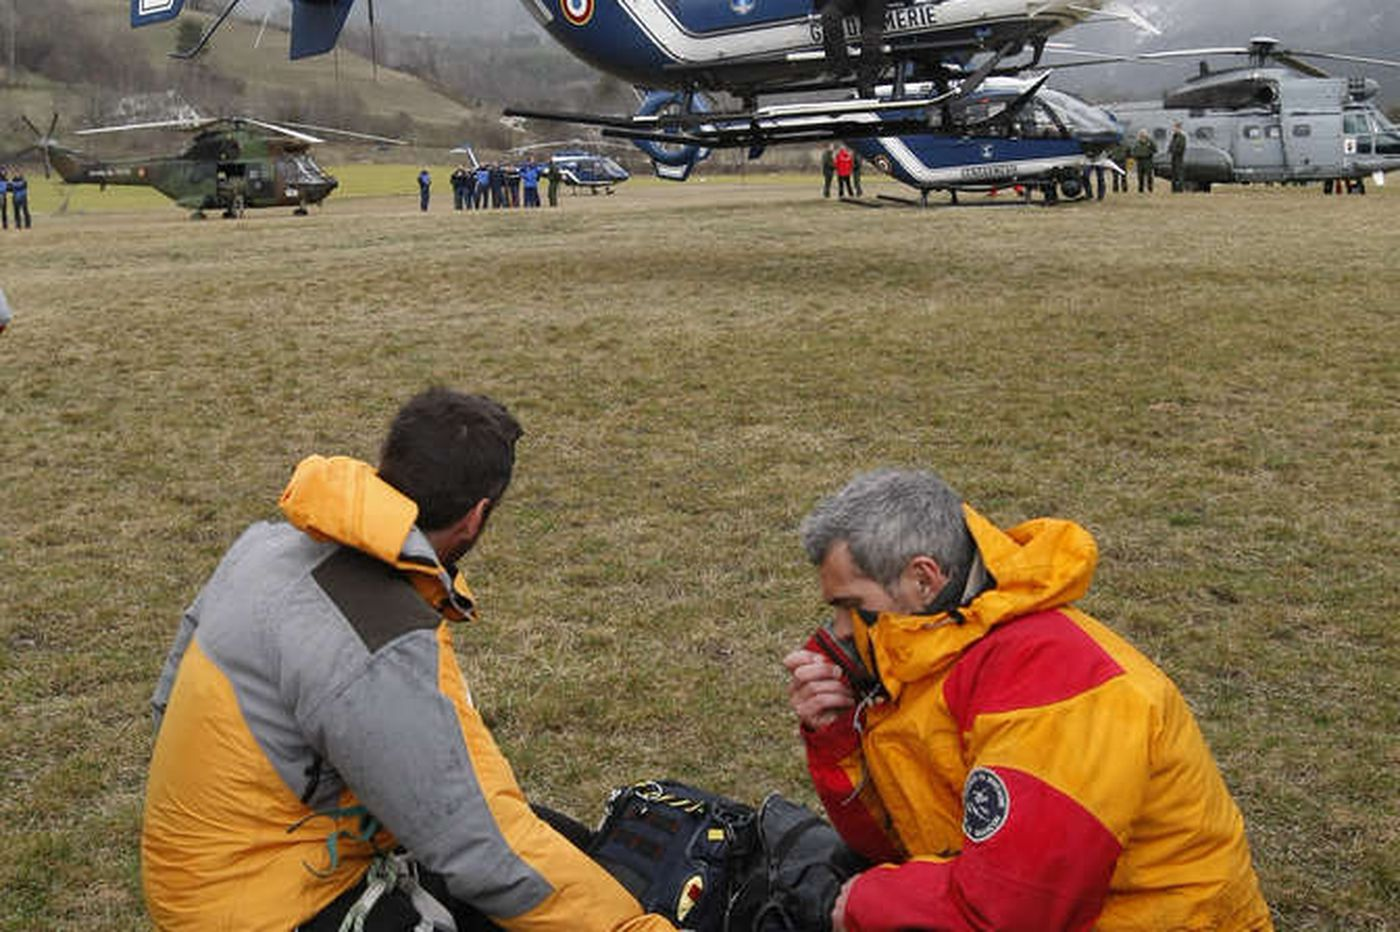 Plane crash kills 150 people in French Alps; Europe in shock